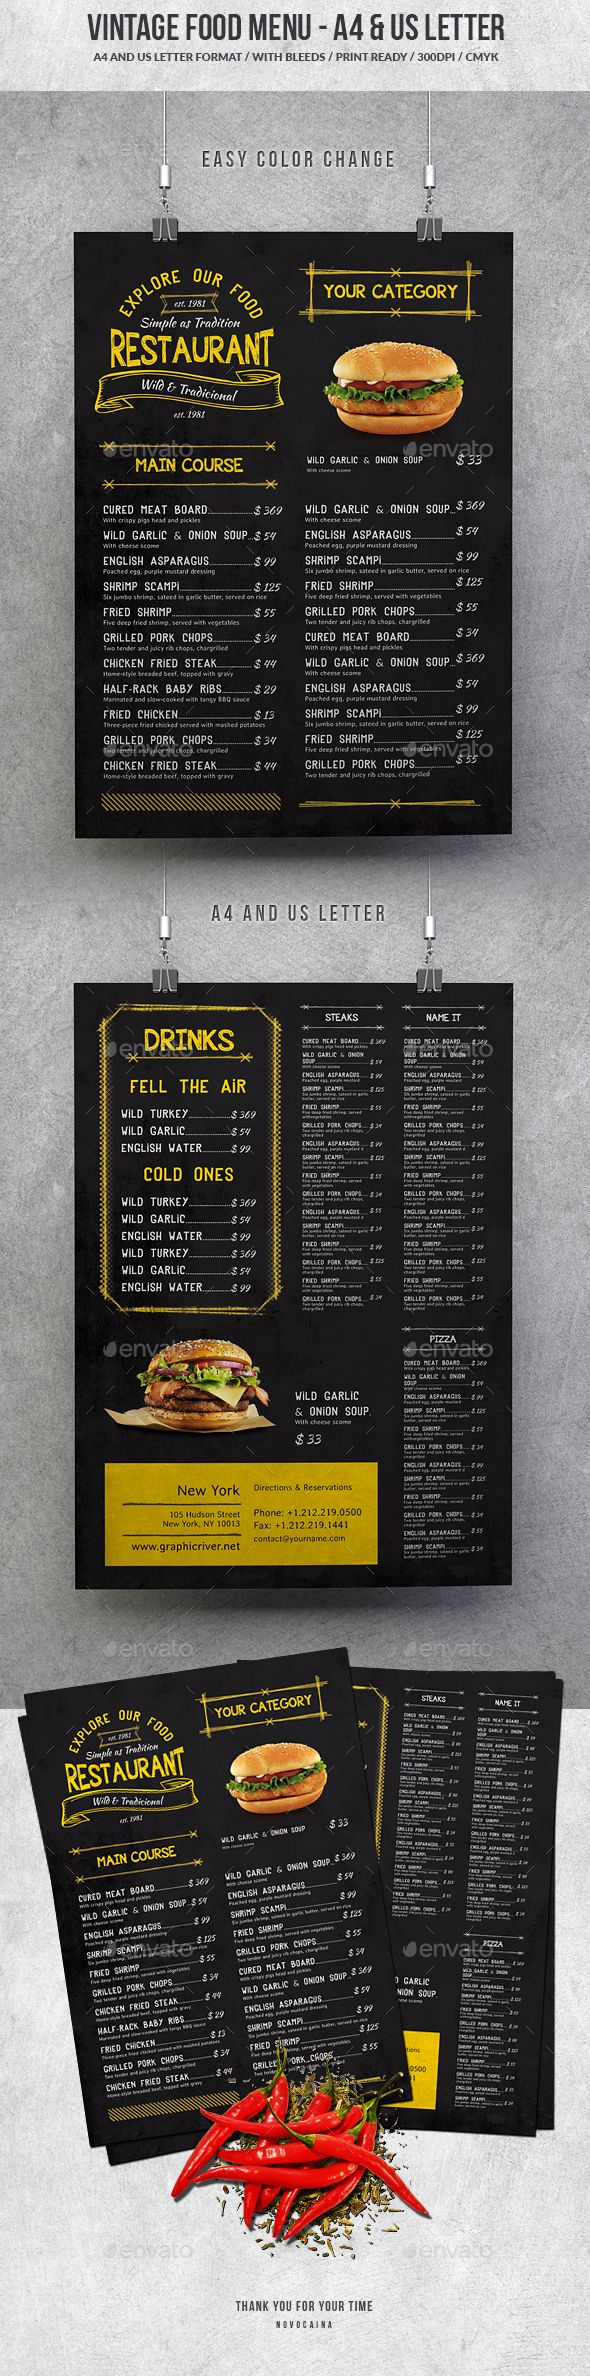 Best Restaurant Menu Design Images On   Menu